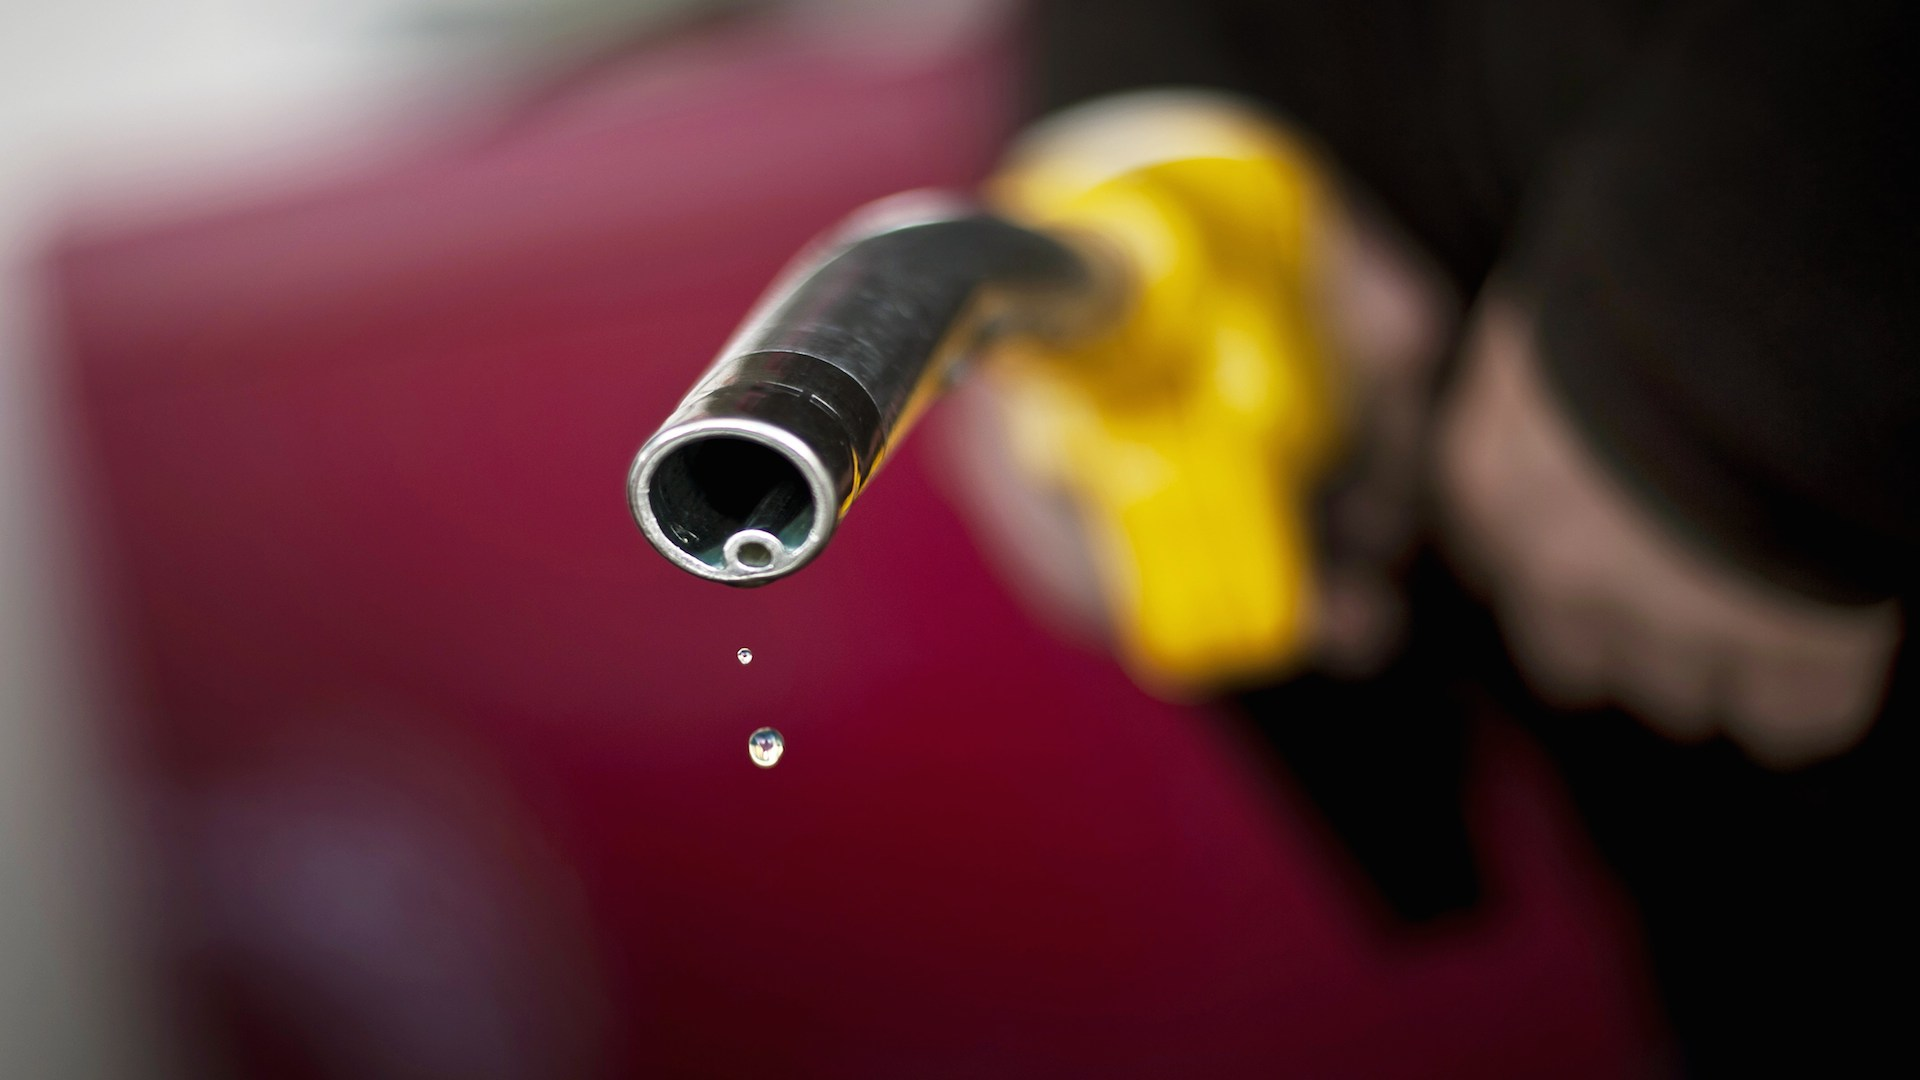 From 24/7 Wall Street, Douglas McIntyre looks at the states who pay the most in gas tax.